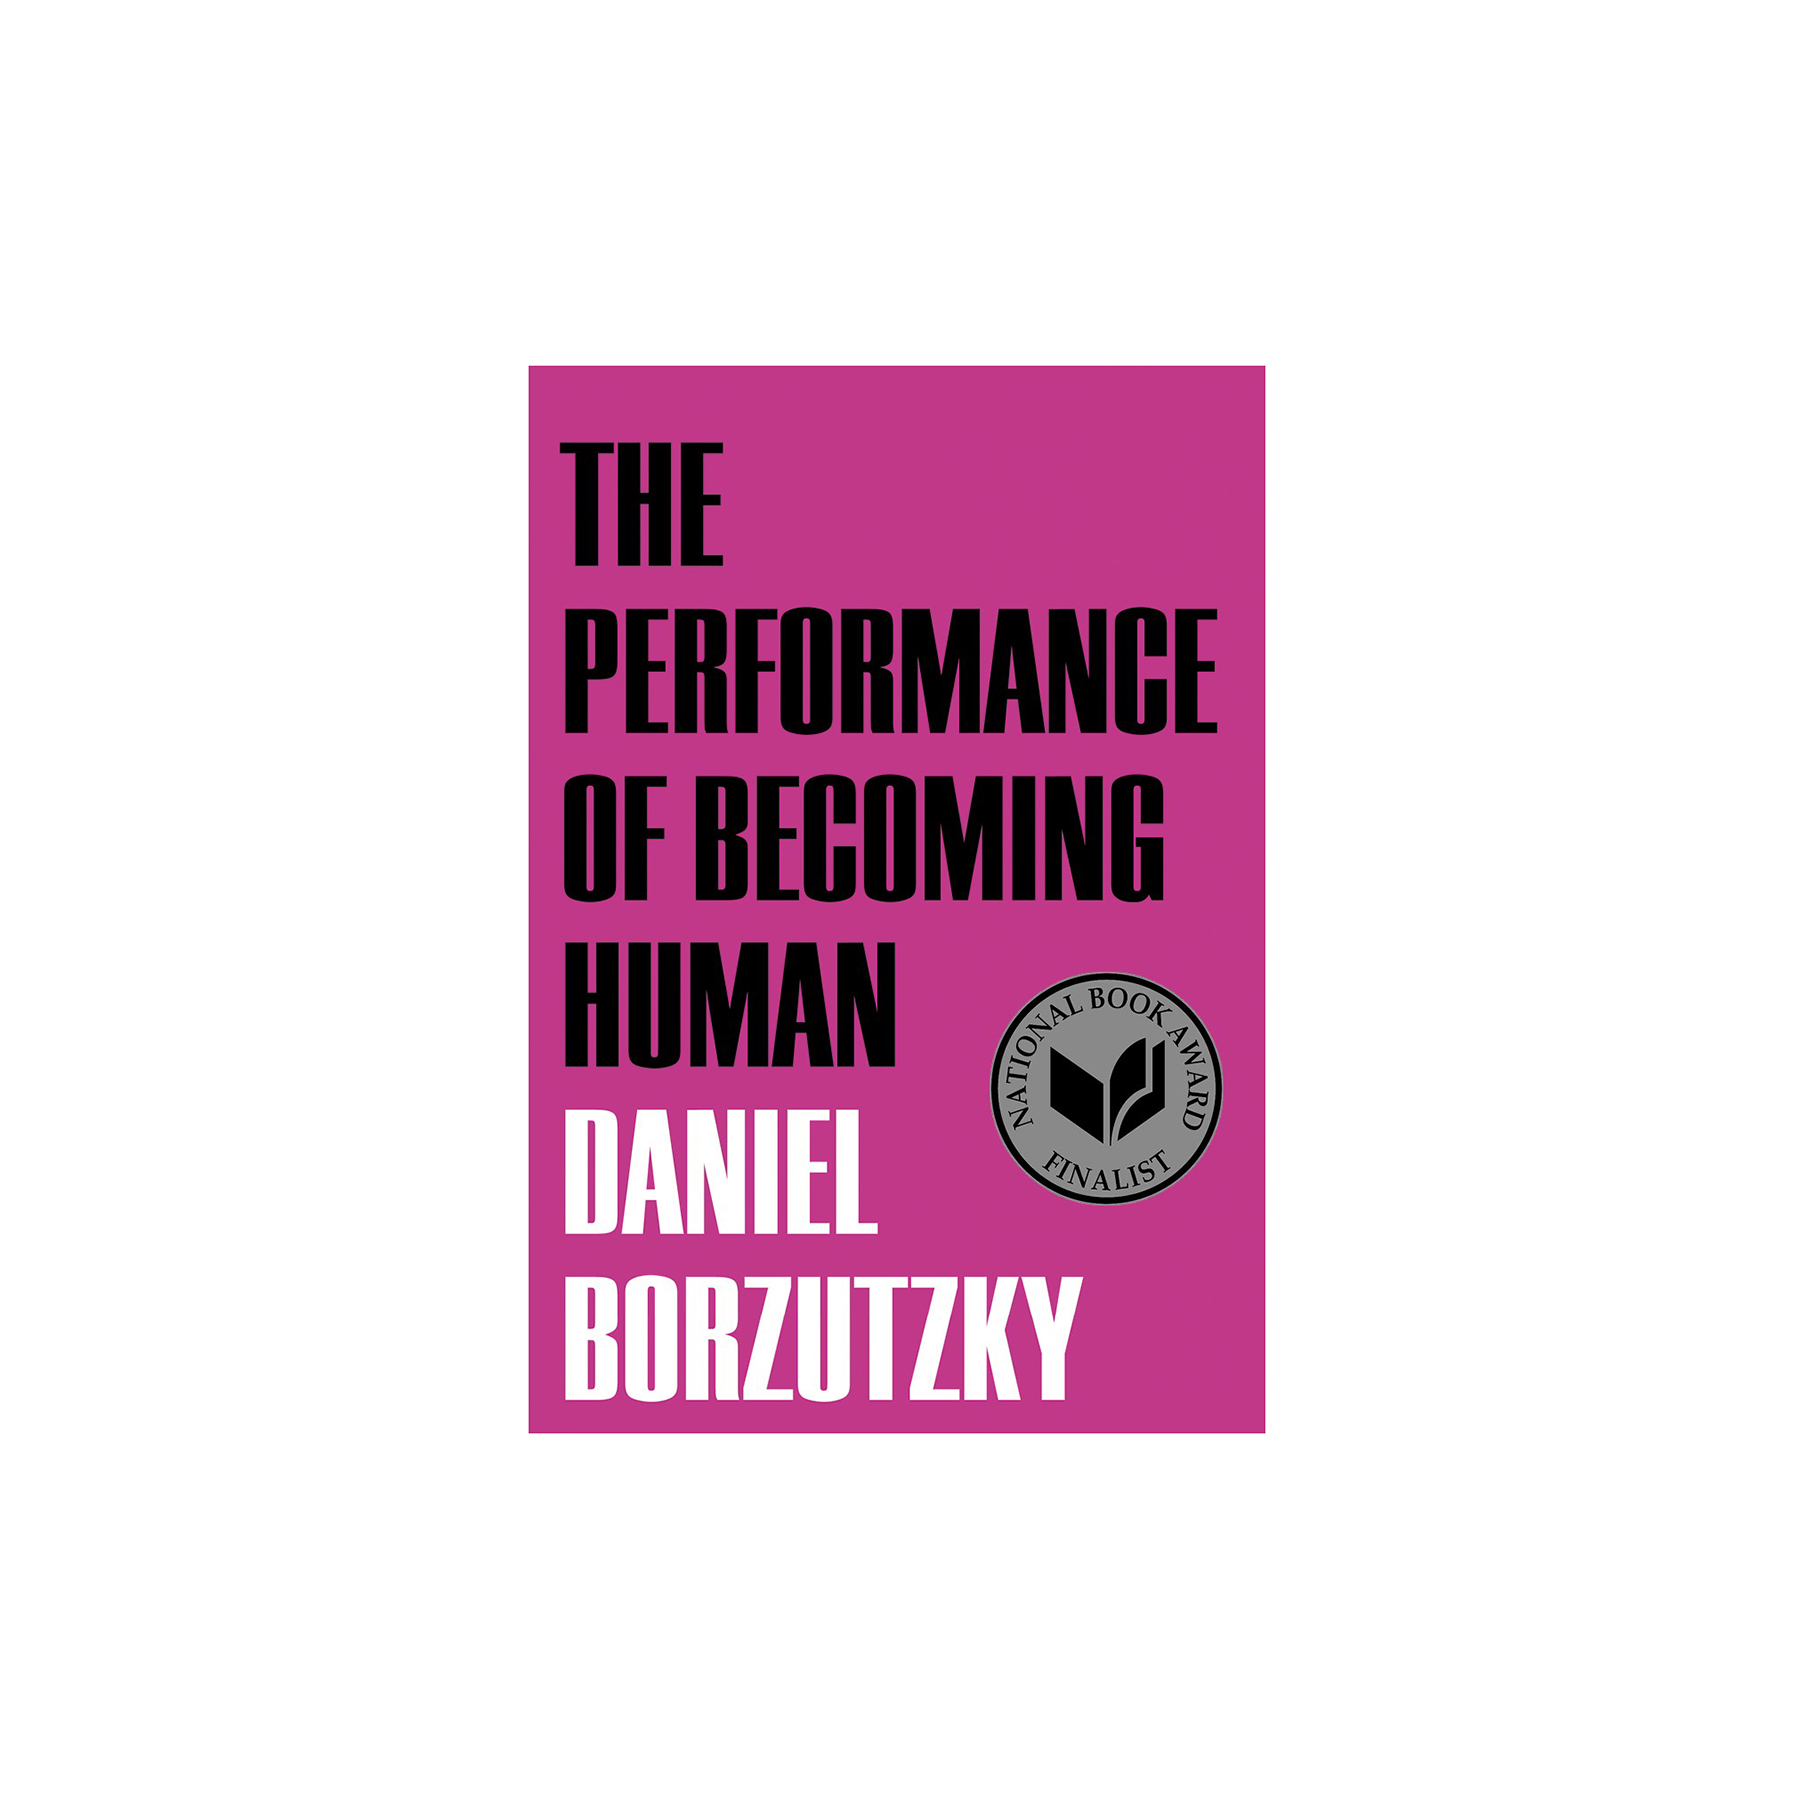 The Performance of Becoming Human, by Daniel Borzutzky